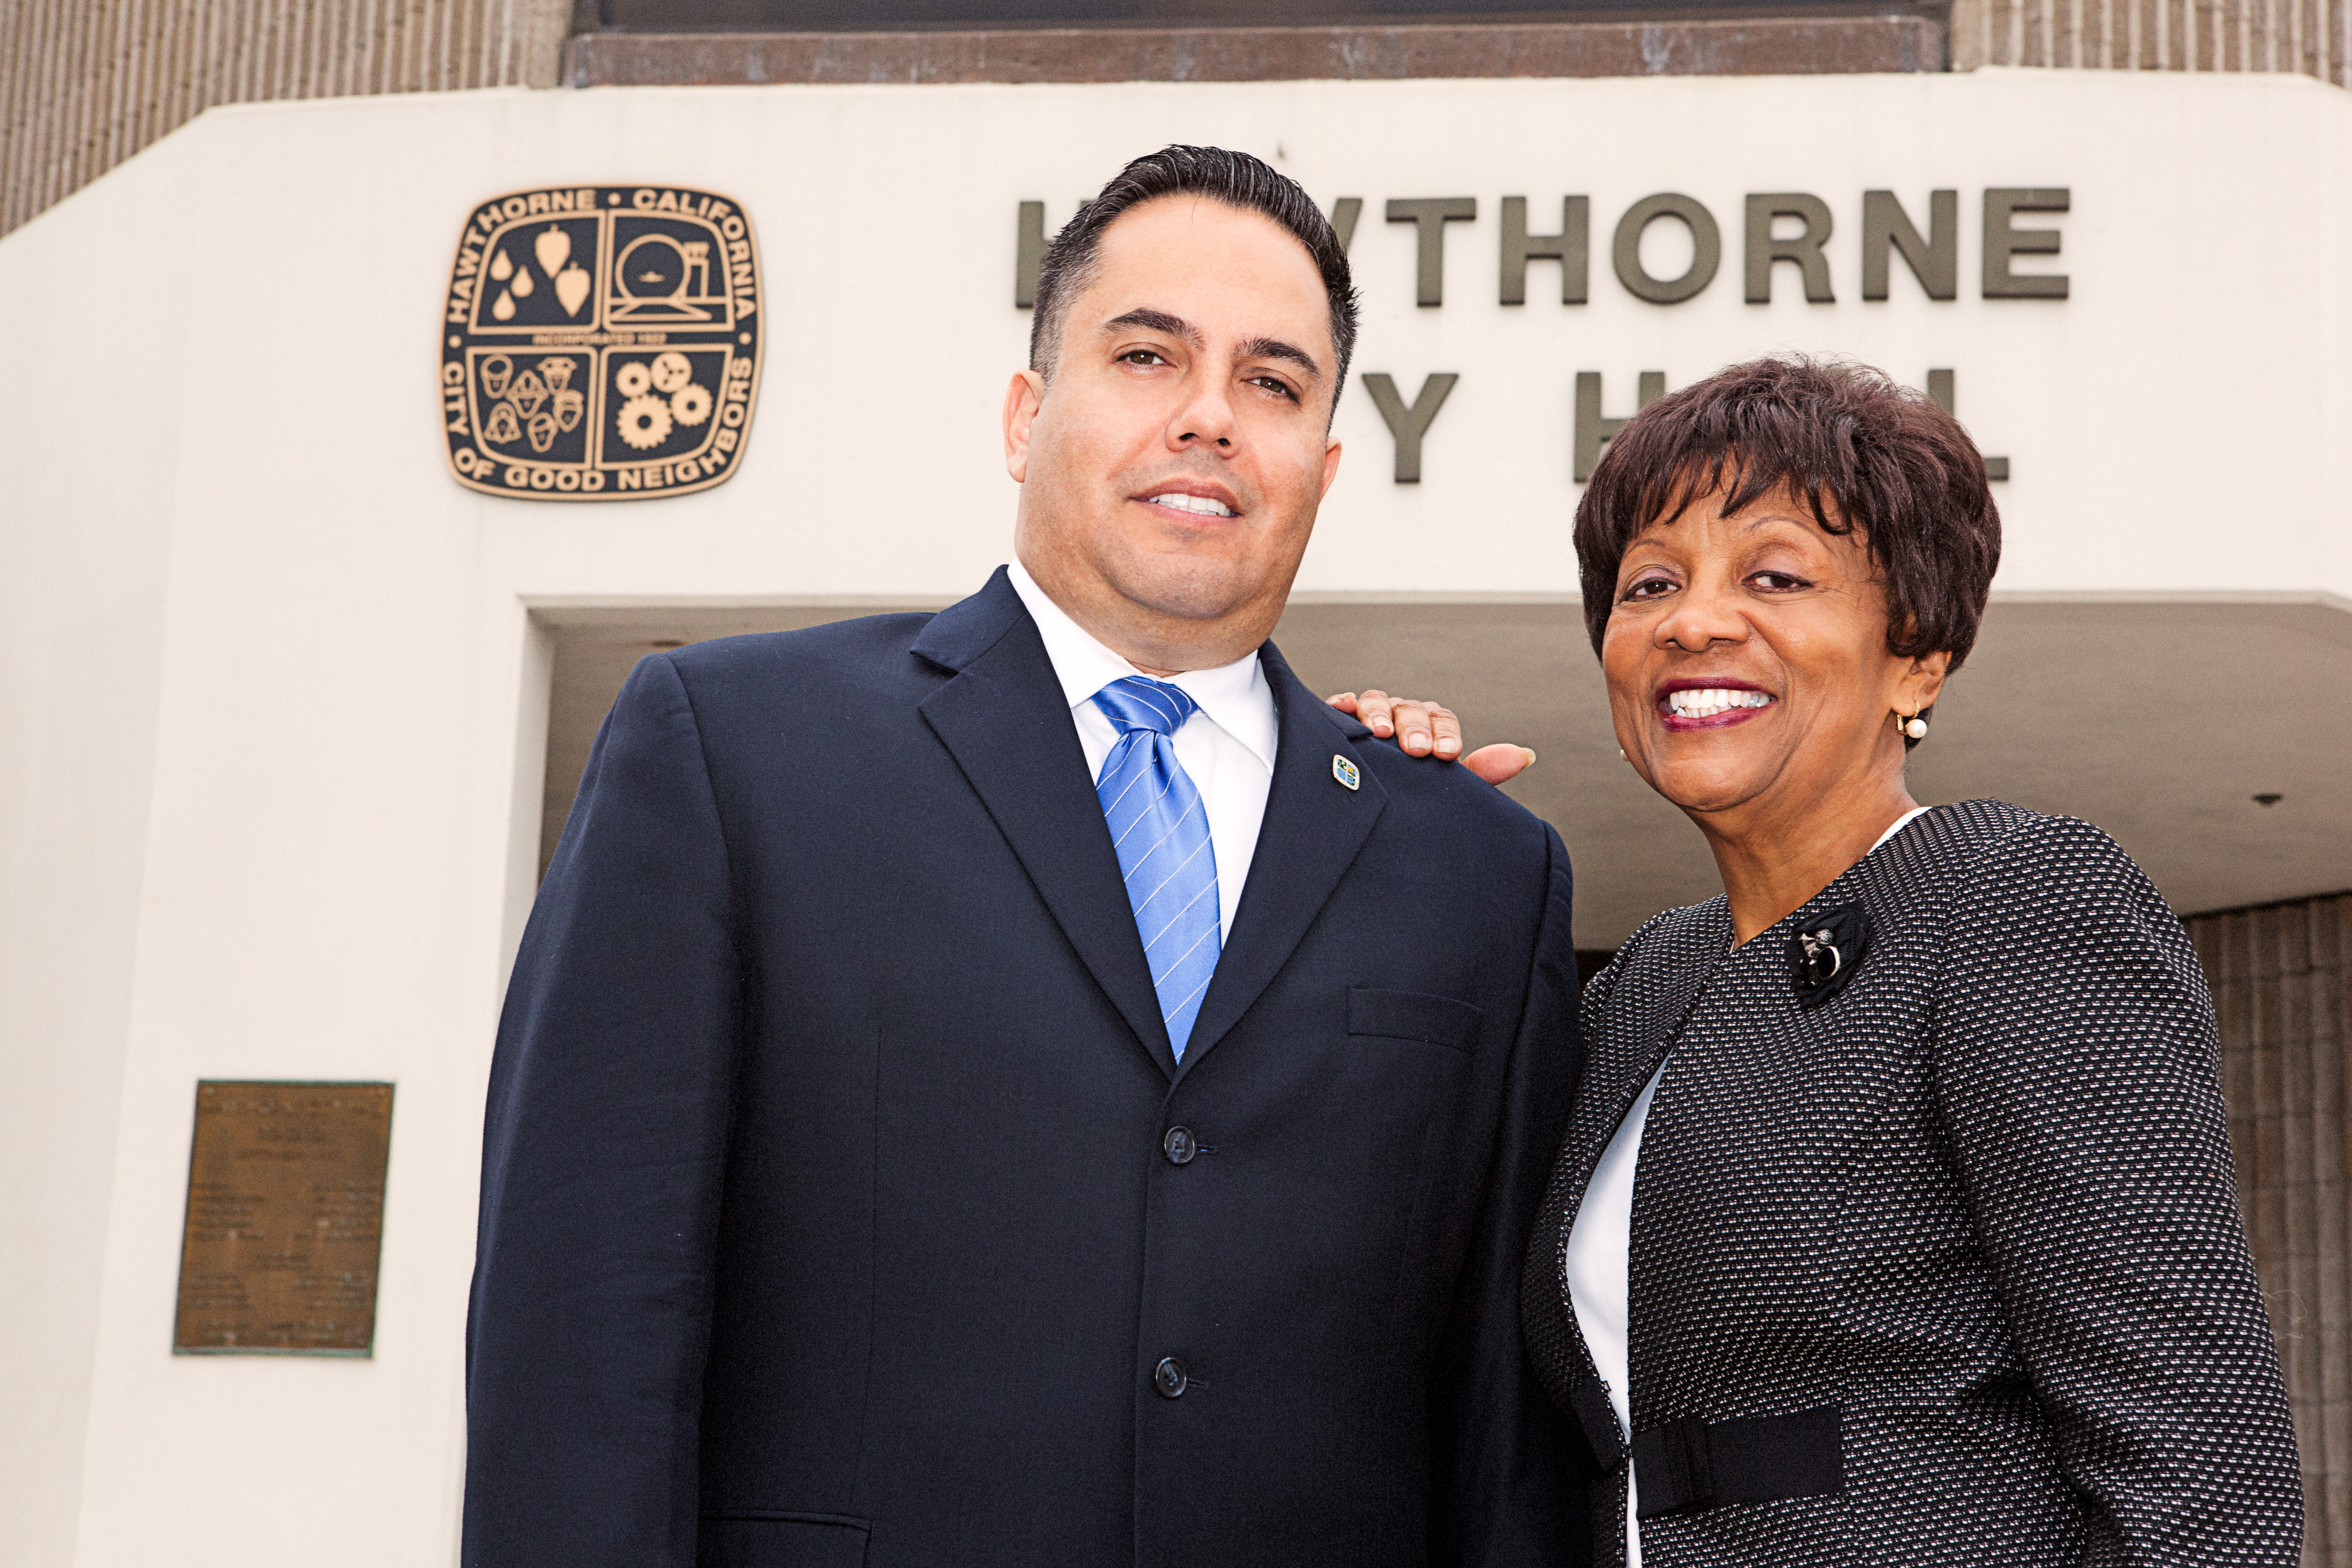 Mayor Alex Vargas and returning council woman Oliva Valentine